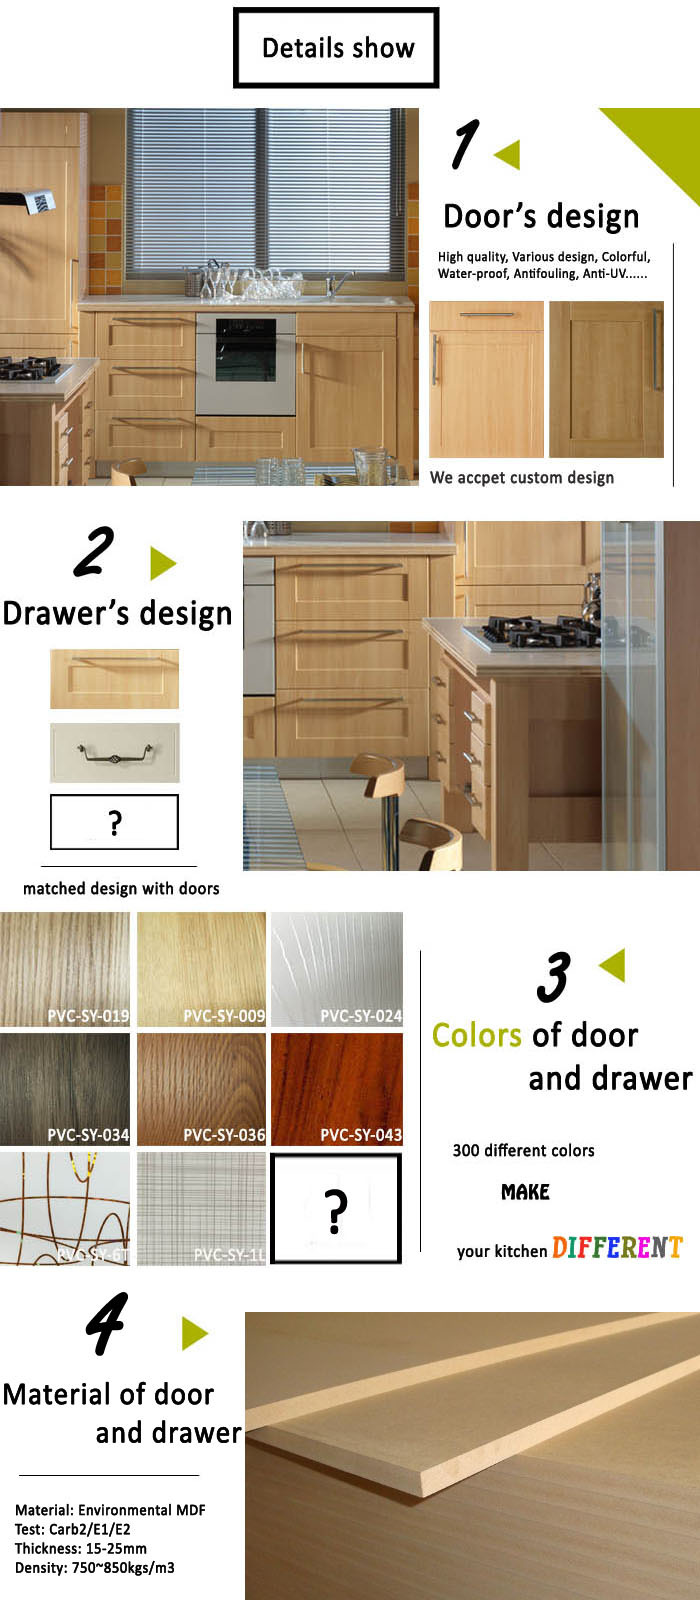 Replacement Cabinet Doors and Drawer Fronts Lowes 2020